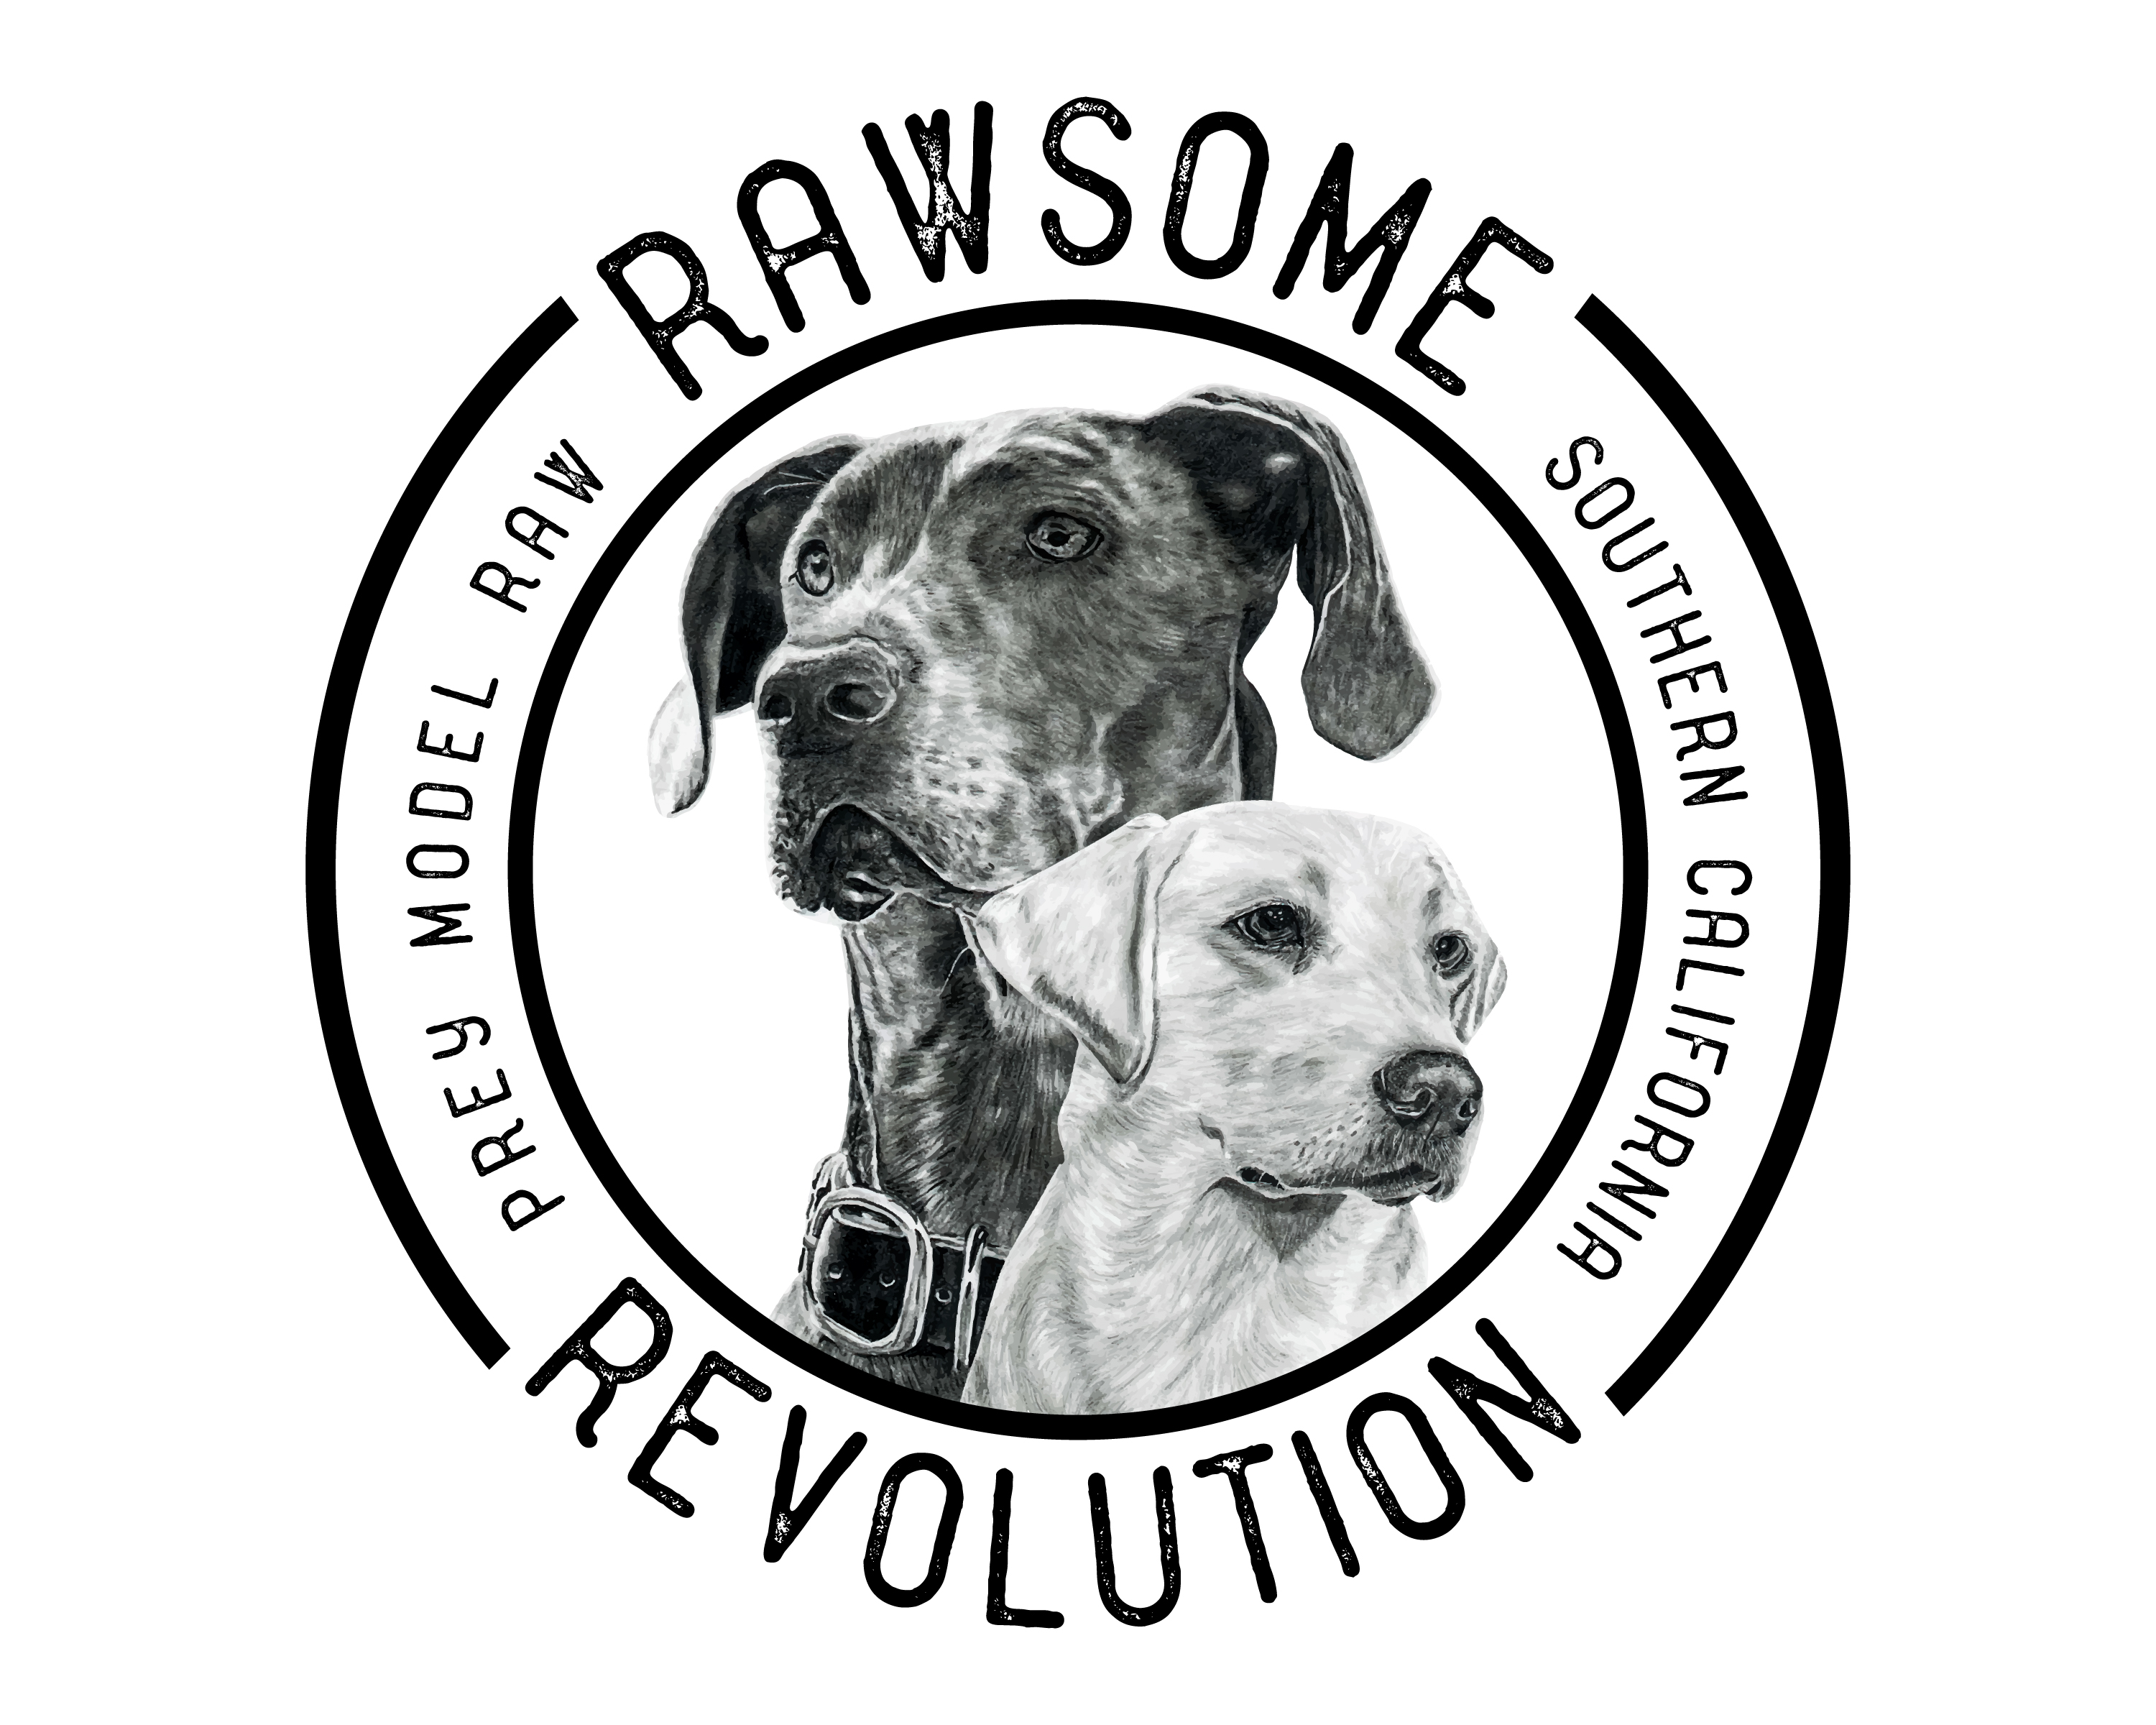 Welcome to Rawsome Revolution